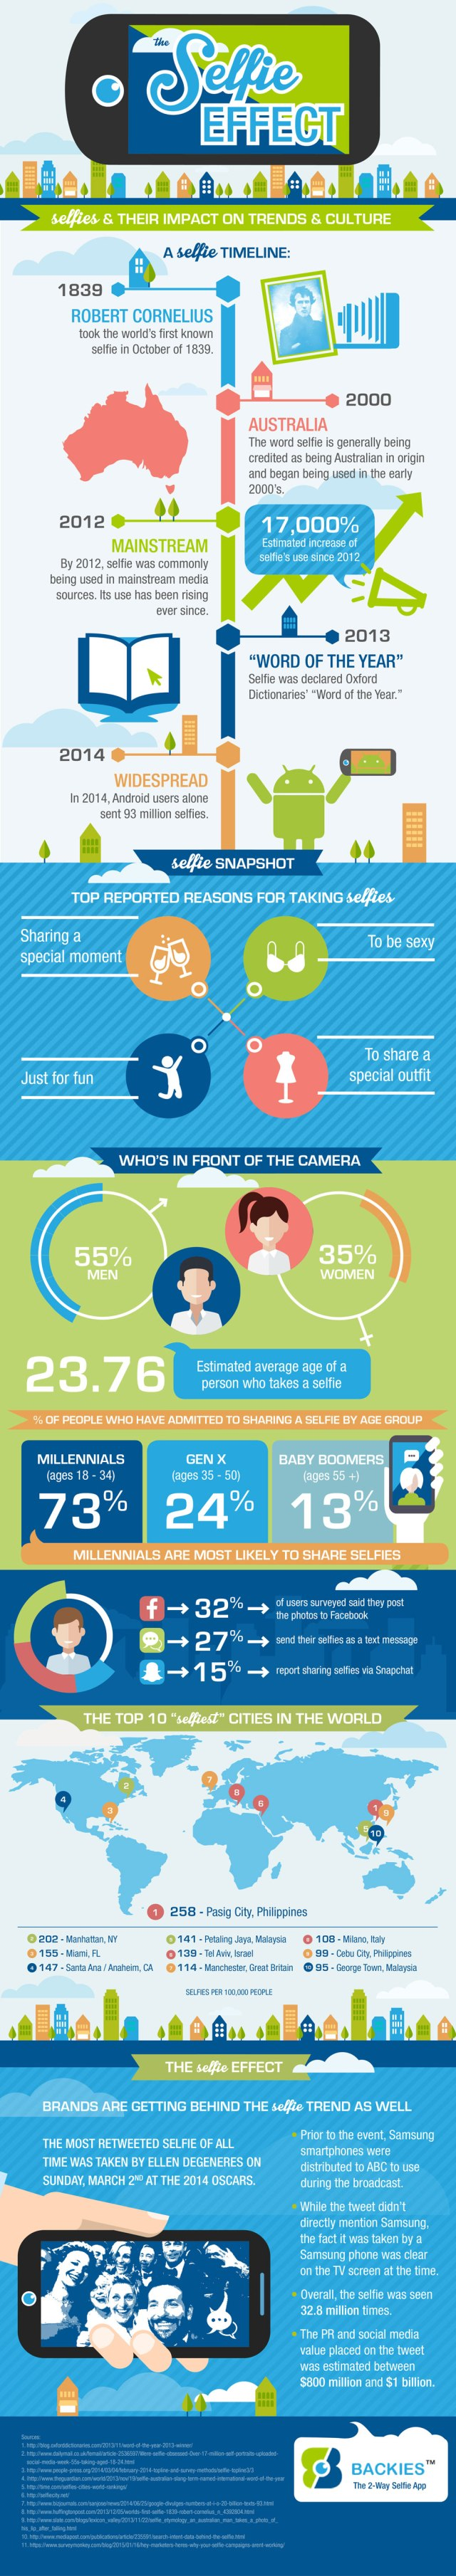 selfies-and-their-impact-on-trends-popular-culture_55d744f2a649e